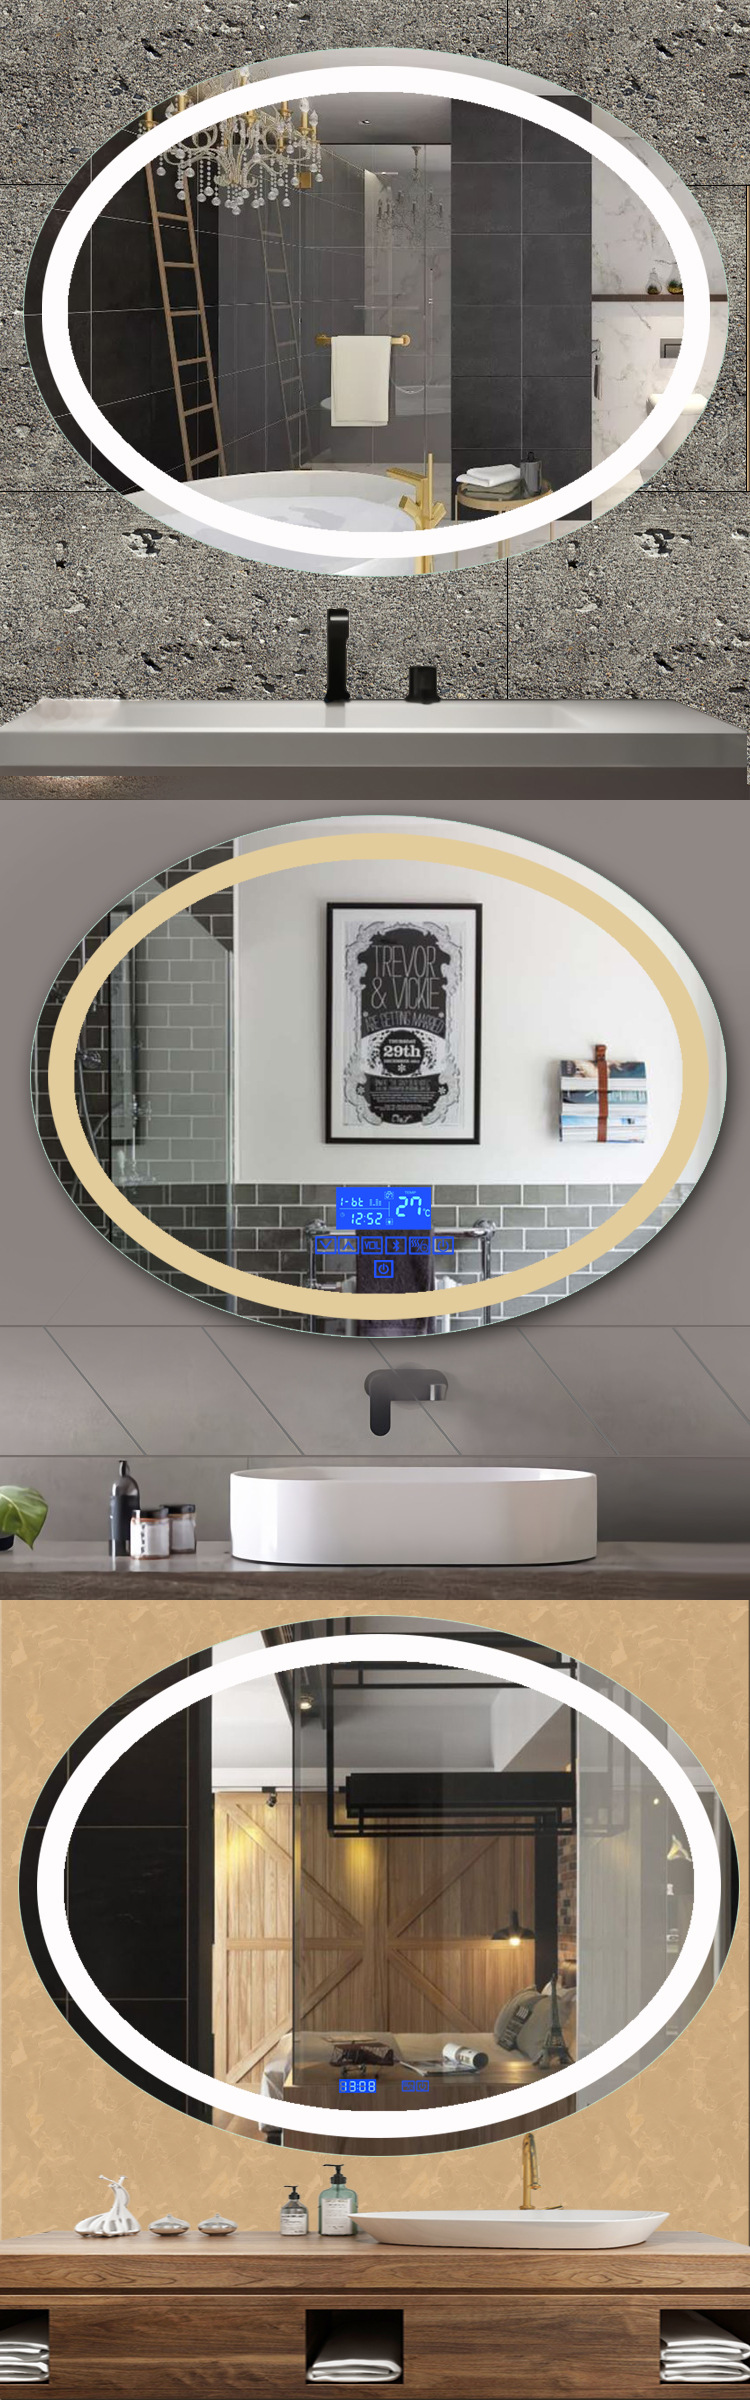 Bathroom Mirror With LightsofApplication Mirror With Light Bulbs Around It